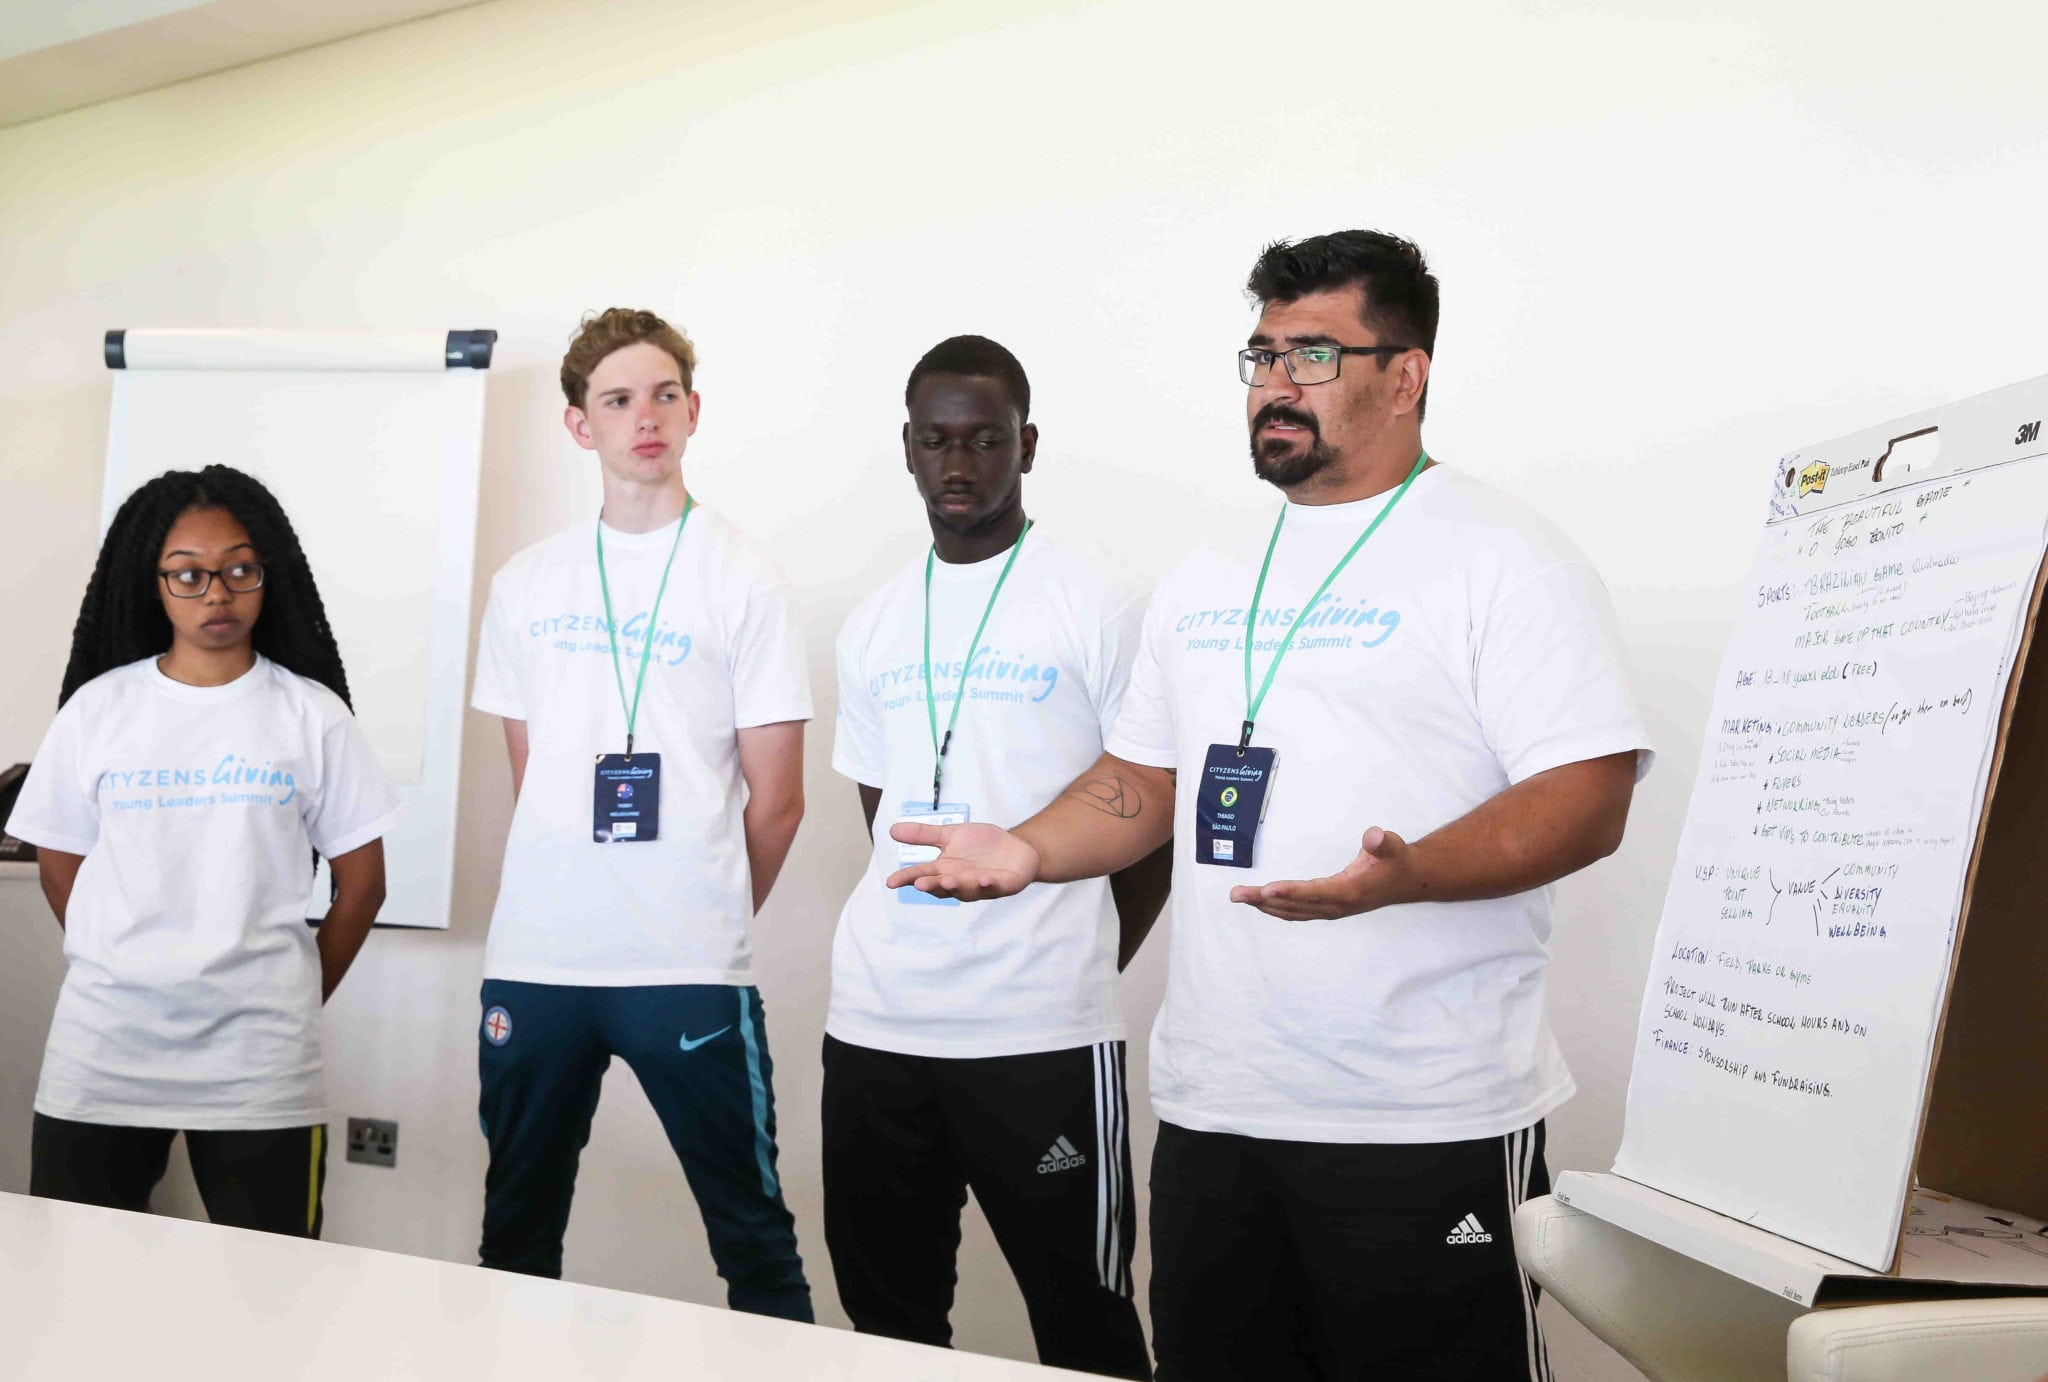 Day 3 - Group Presentations at Manchester City